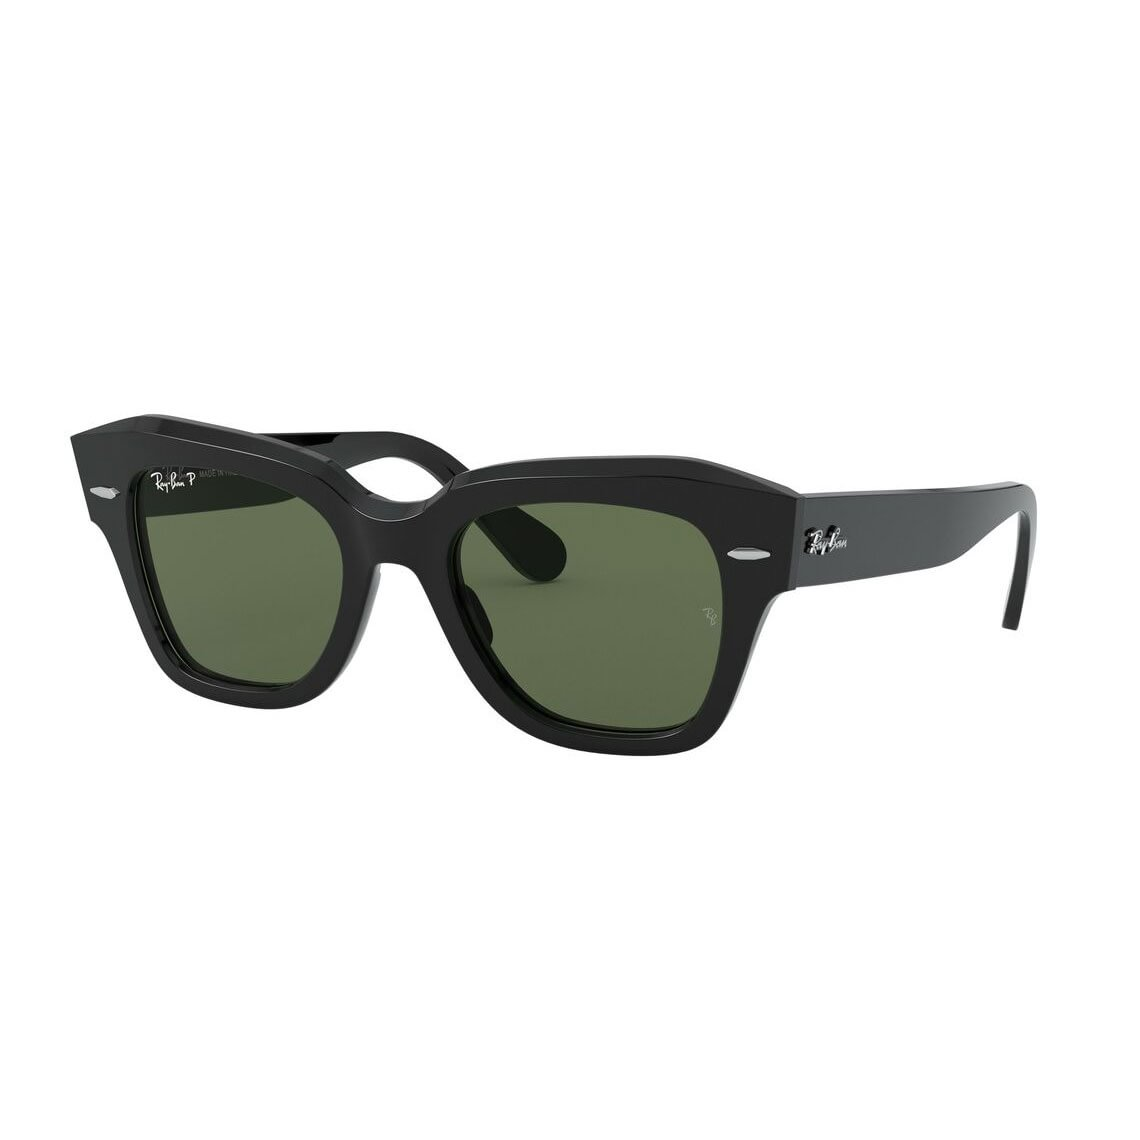 Ray-Ban State Street RB2186 901/58 5220